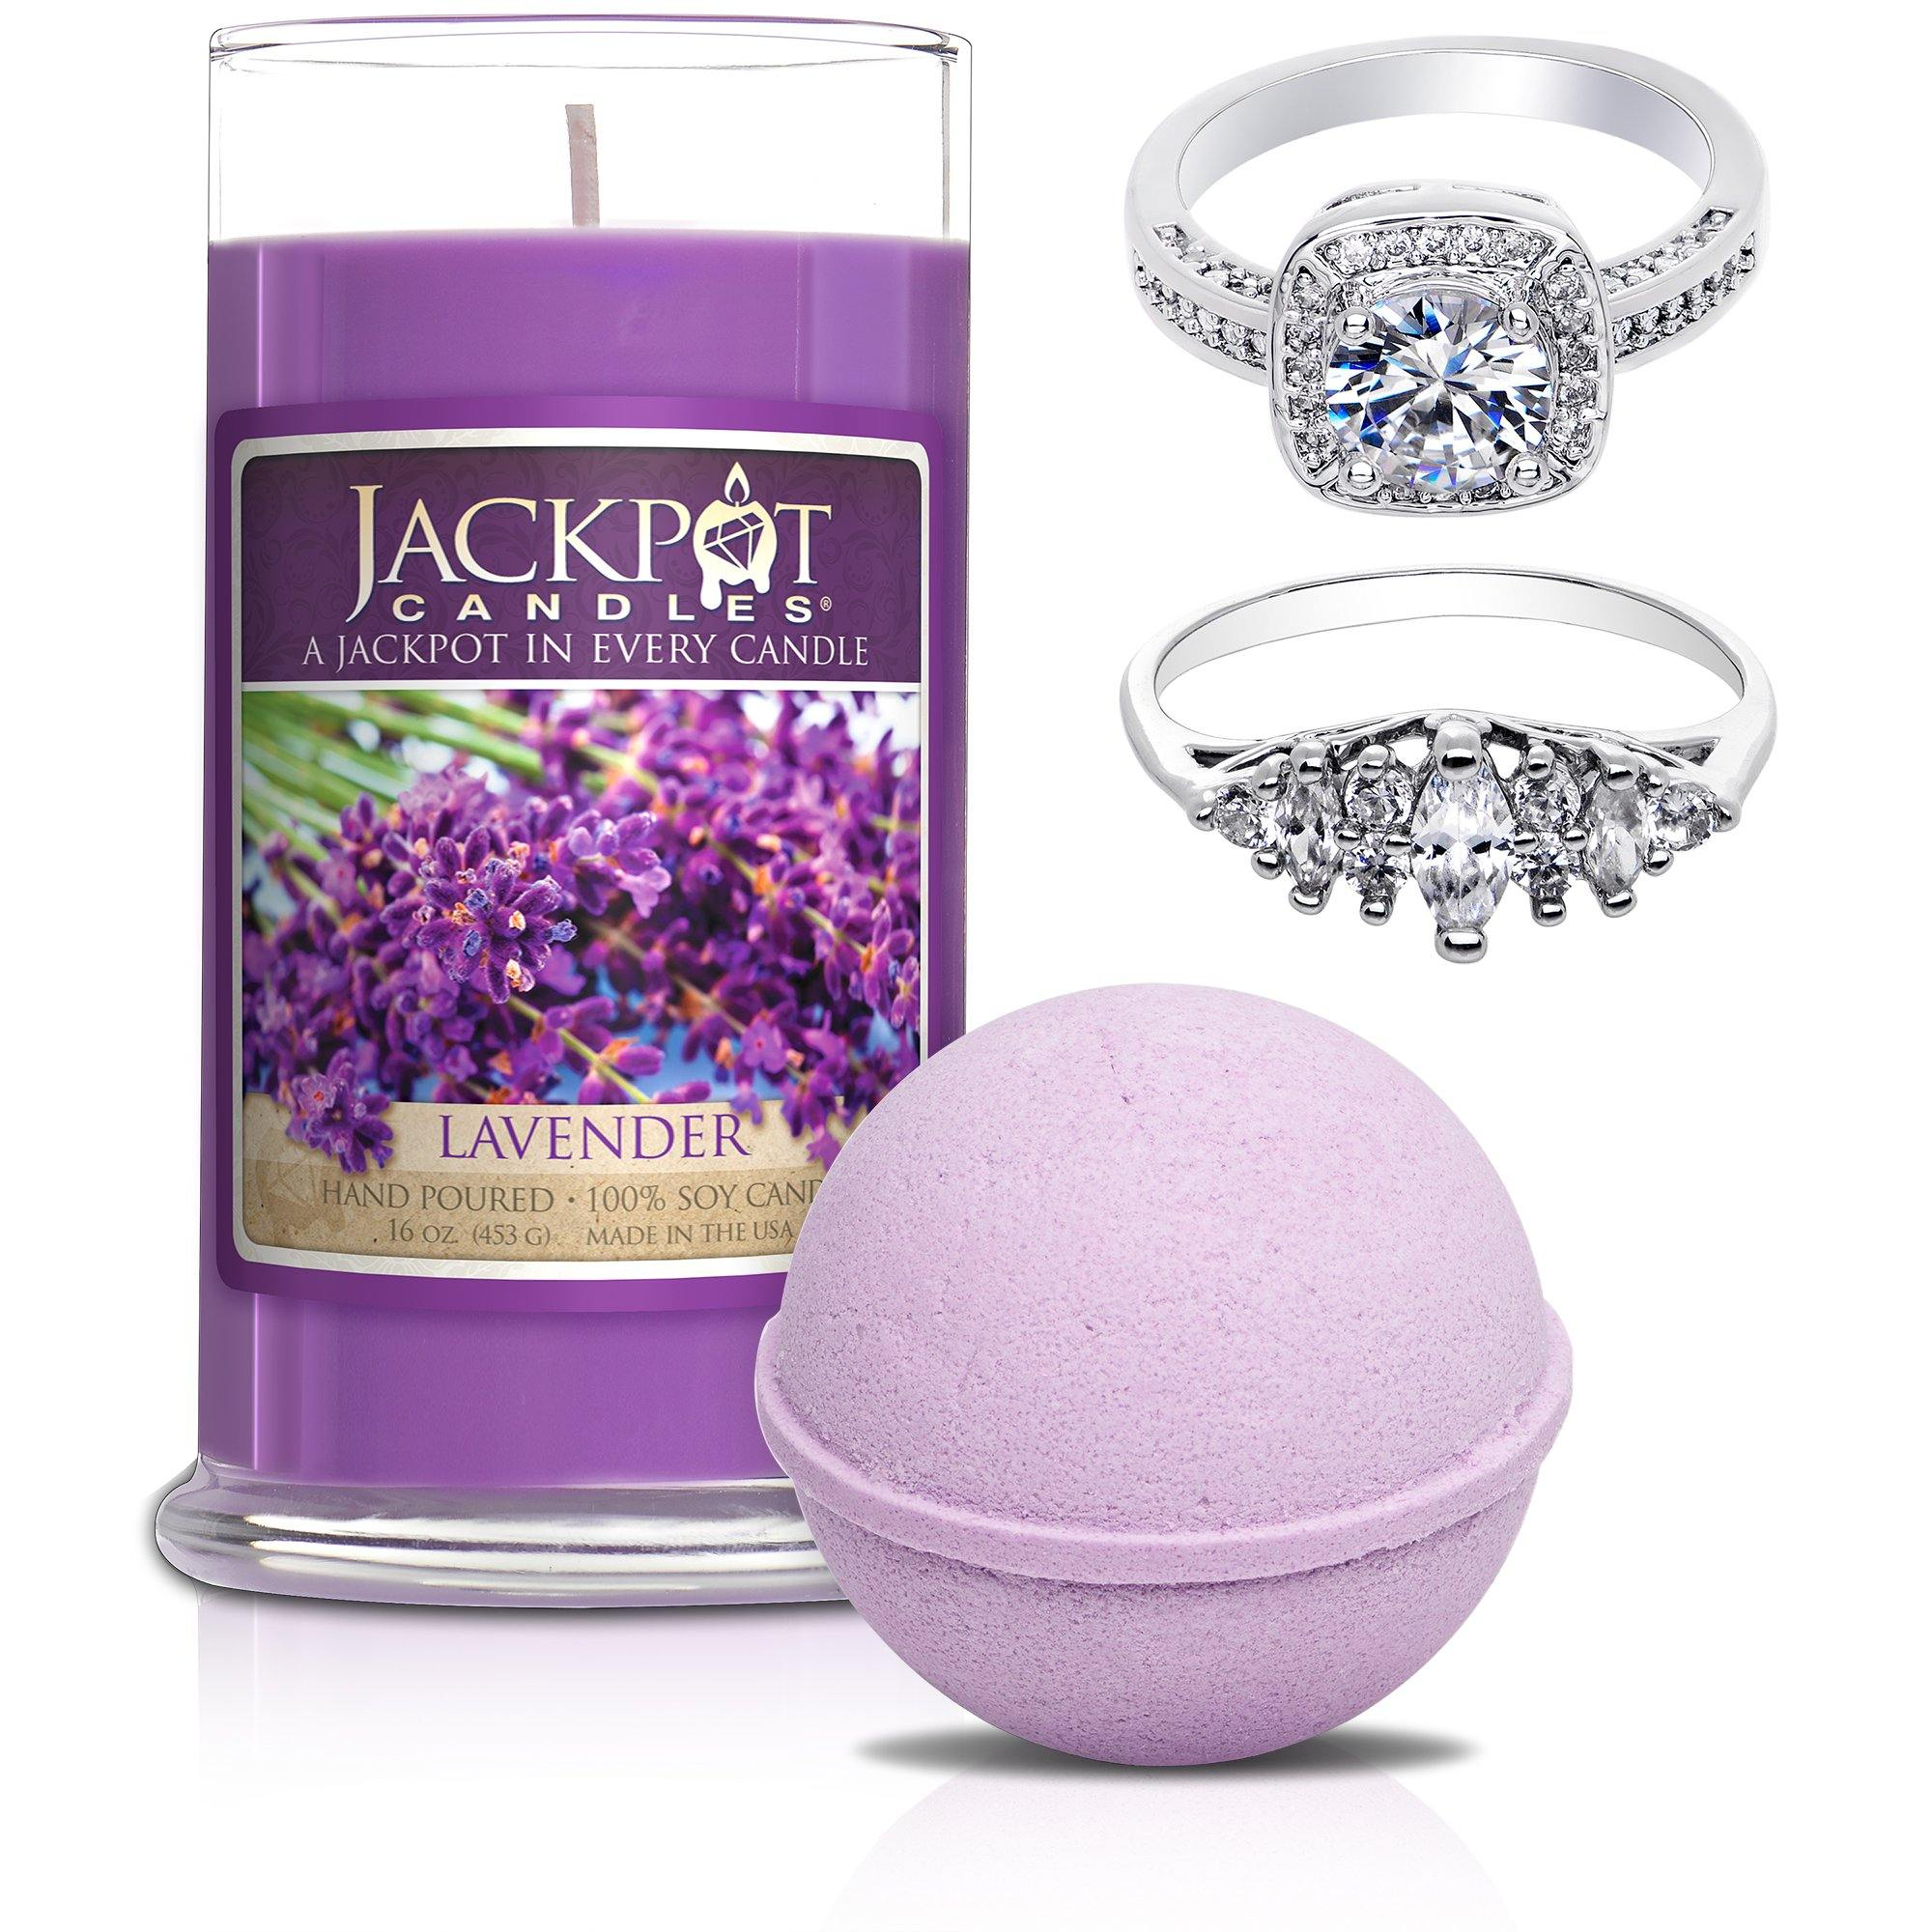 Enliven Me Lavender Candle & Bath Bomb Gift Set